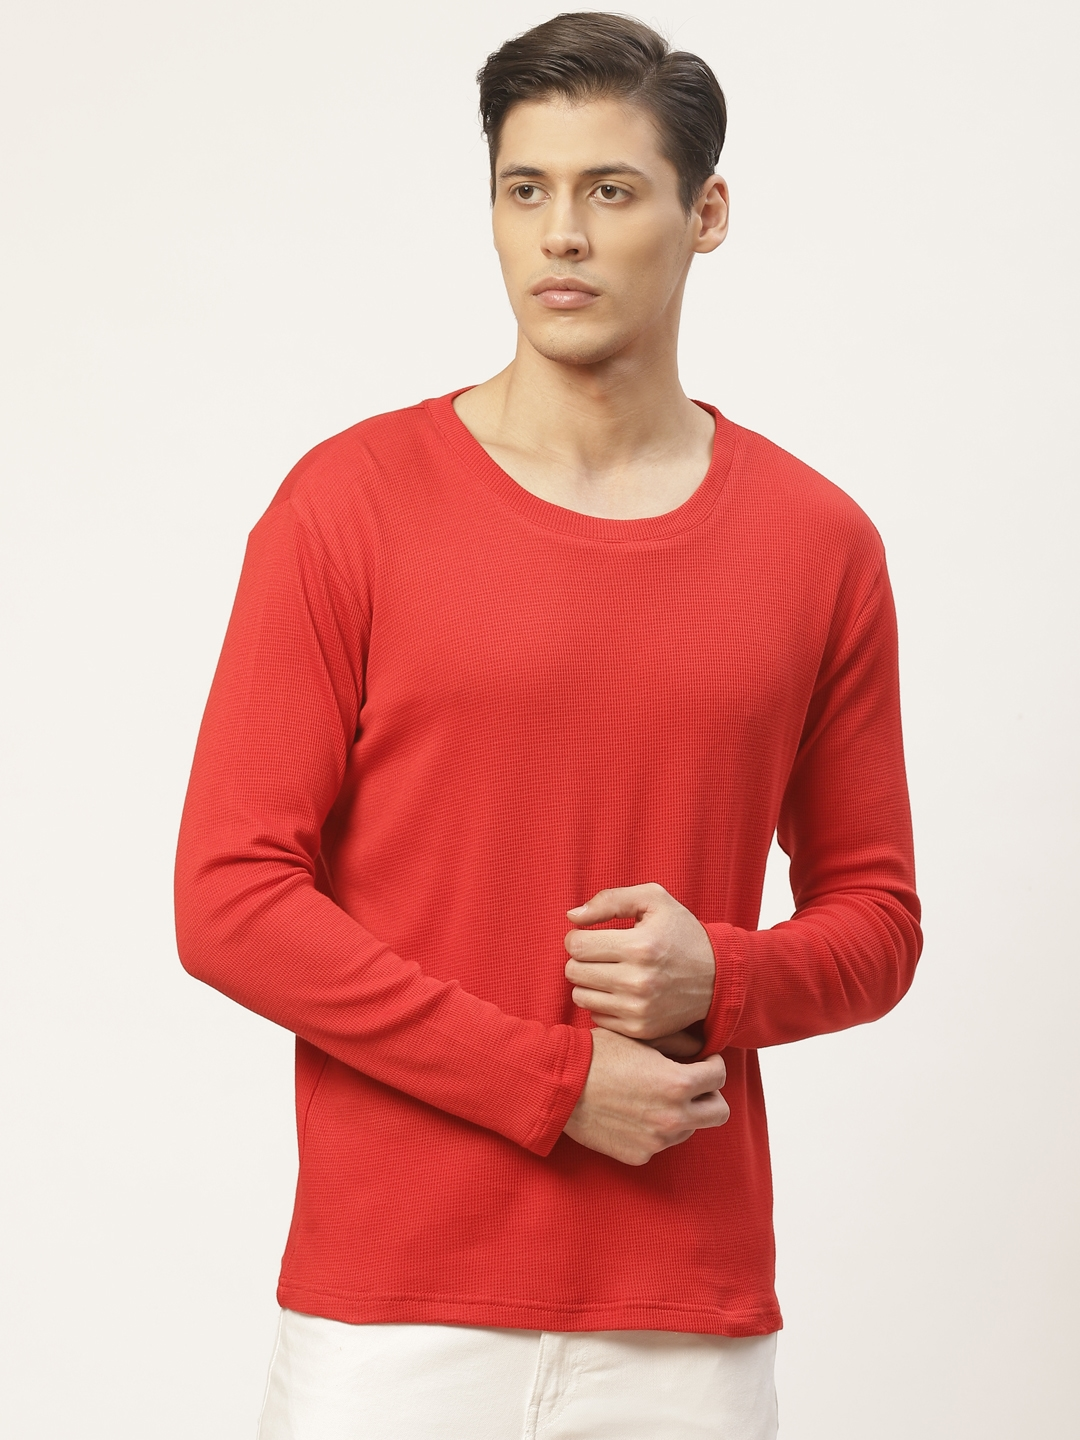 PAUSE SPORT Men Red Self Design Round Neck T shirt